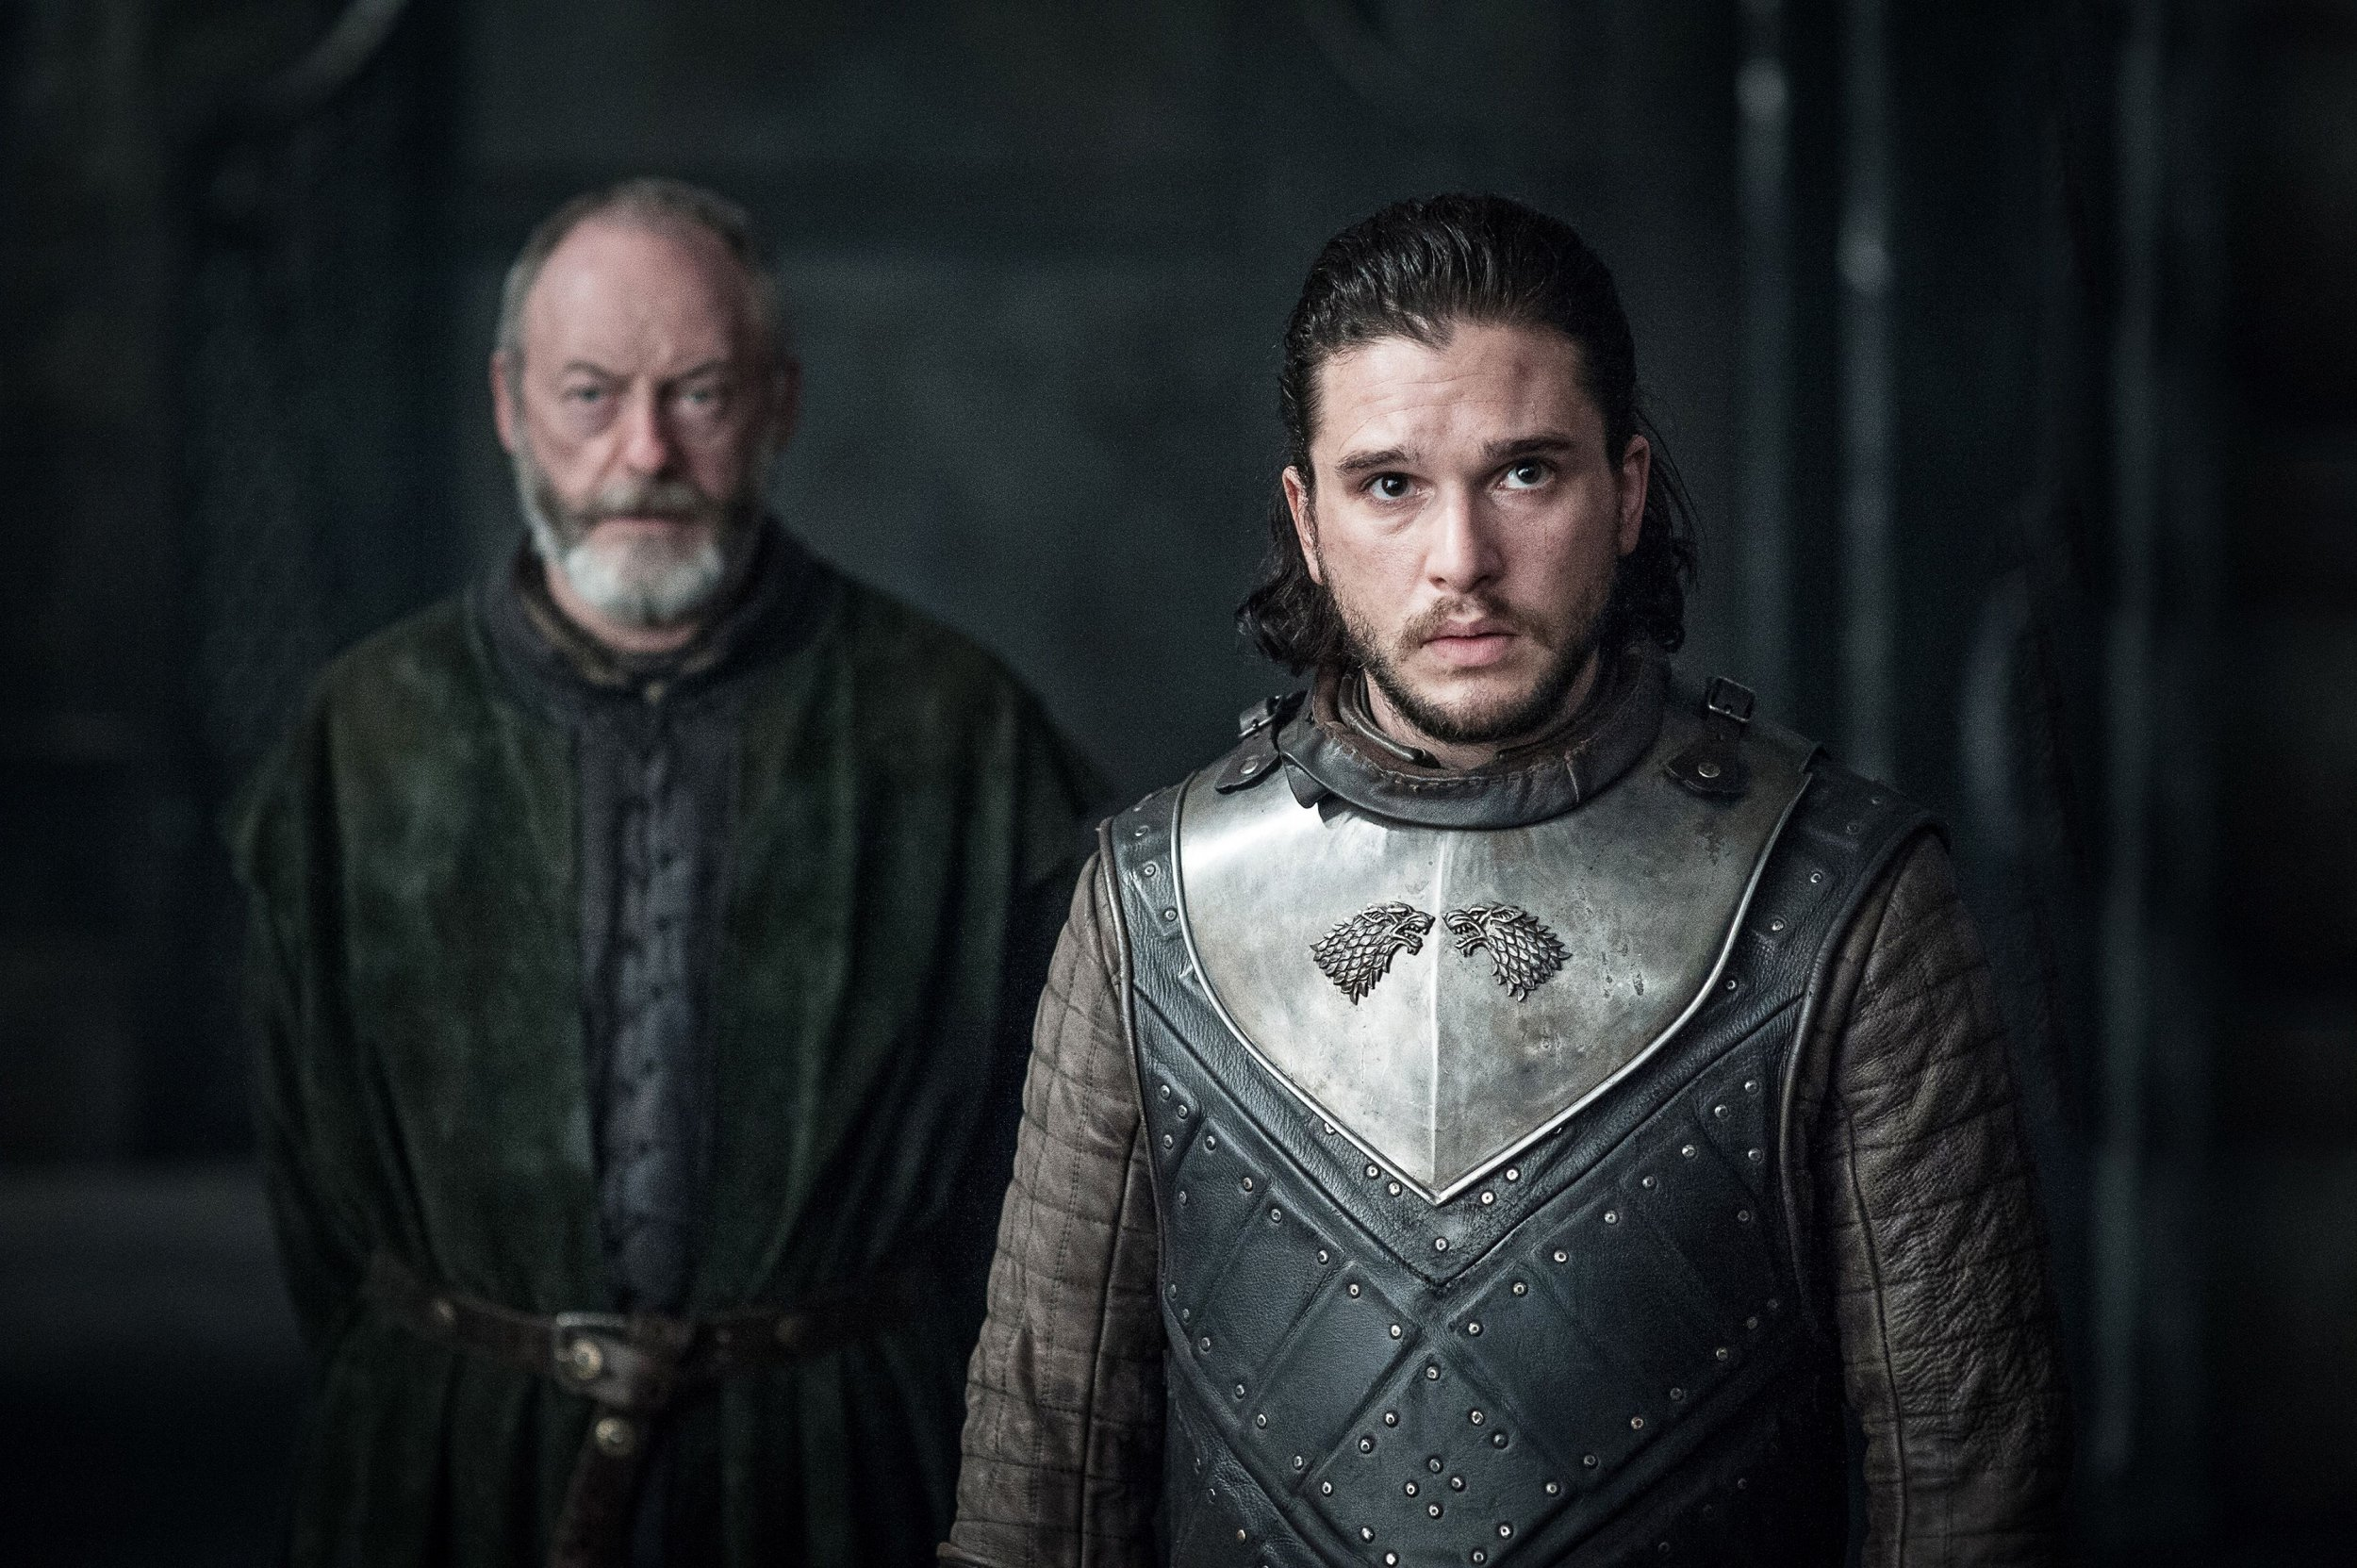 When is Game of Thrones season 8 episode 6 and how to watch?